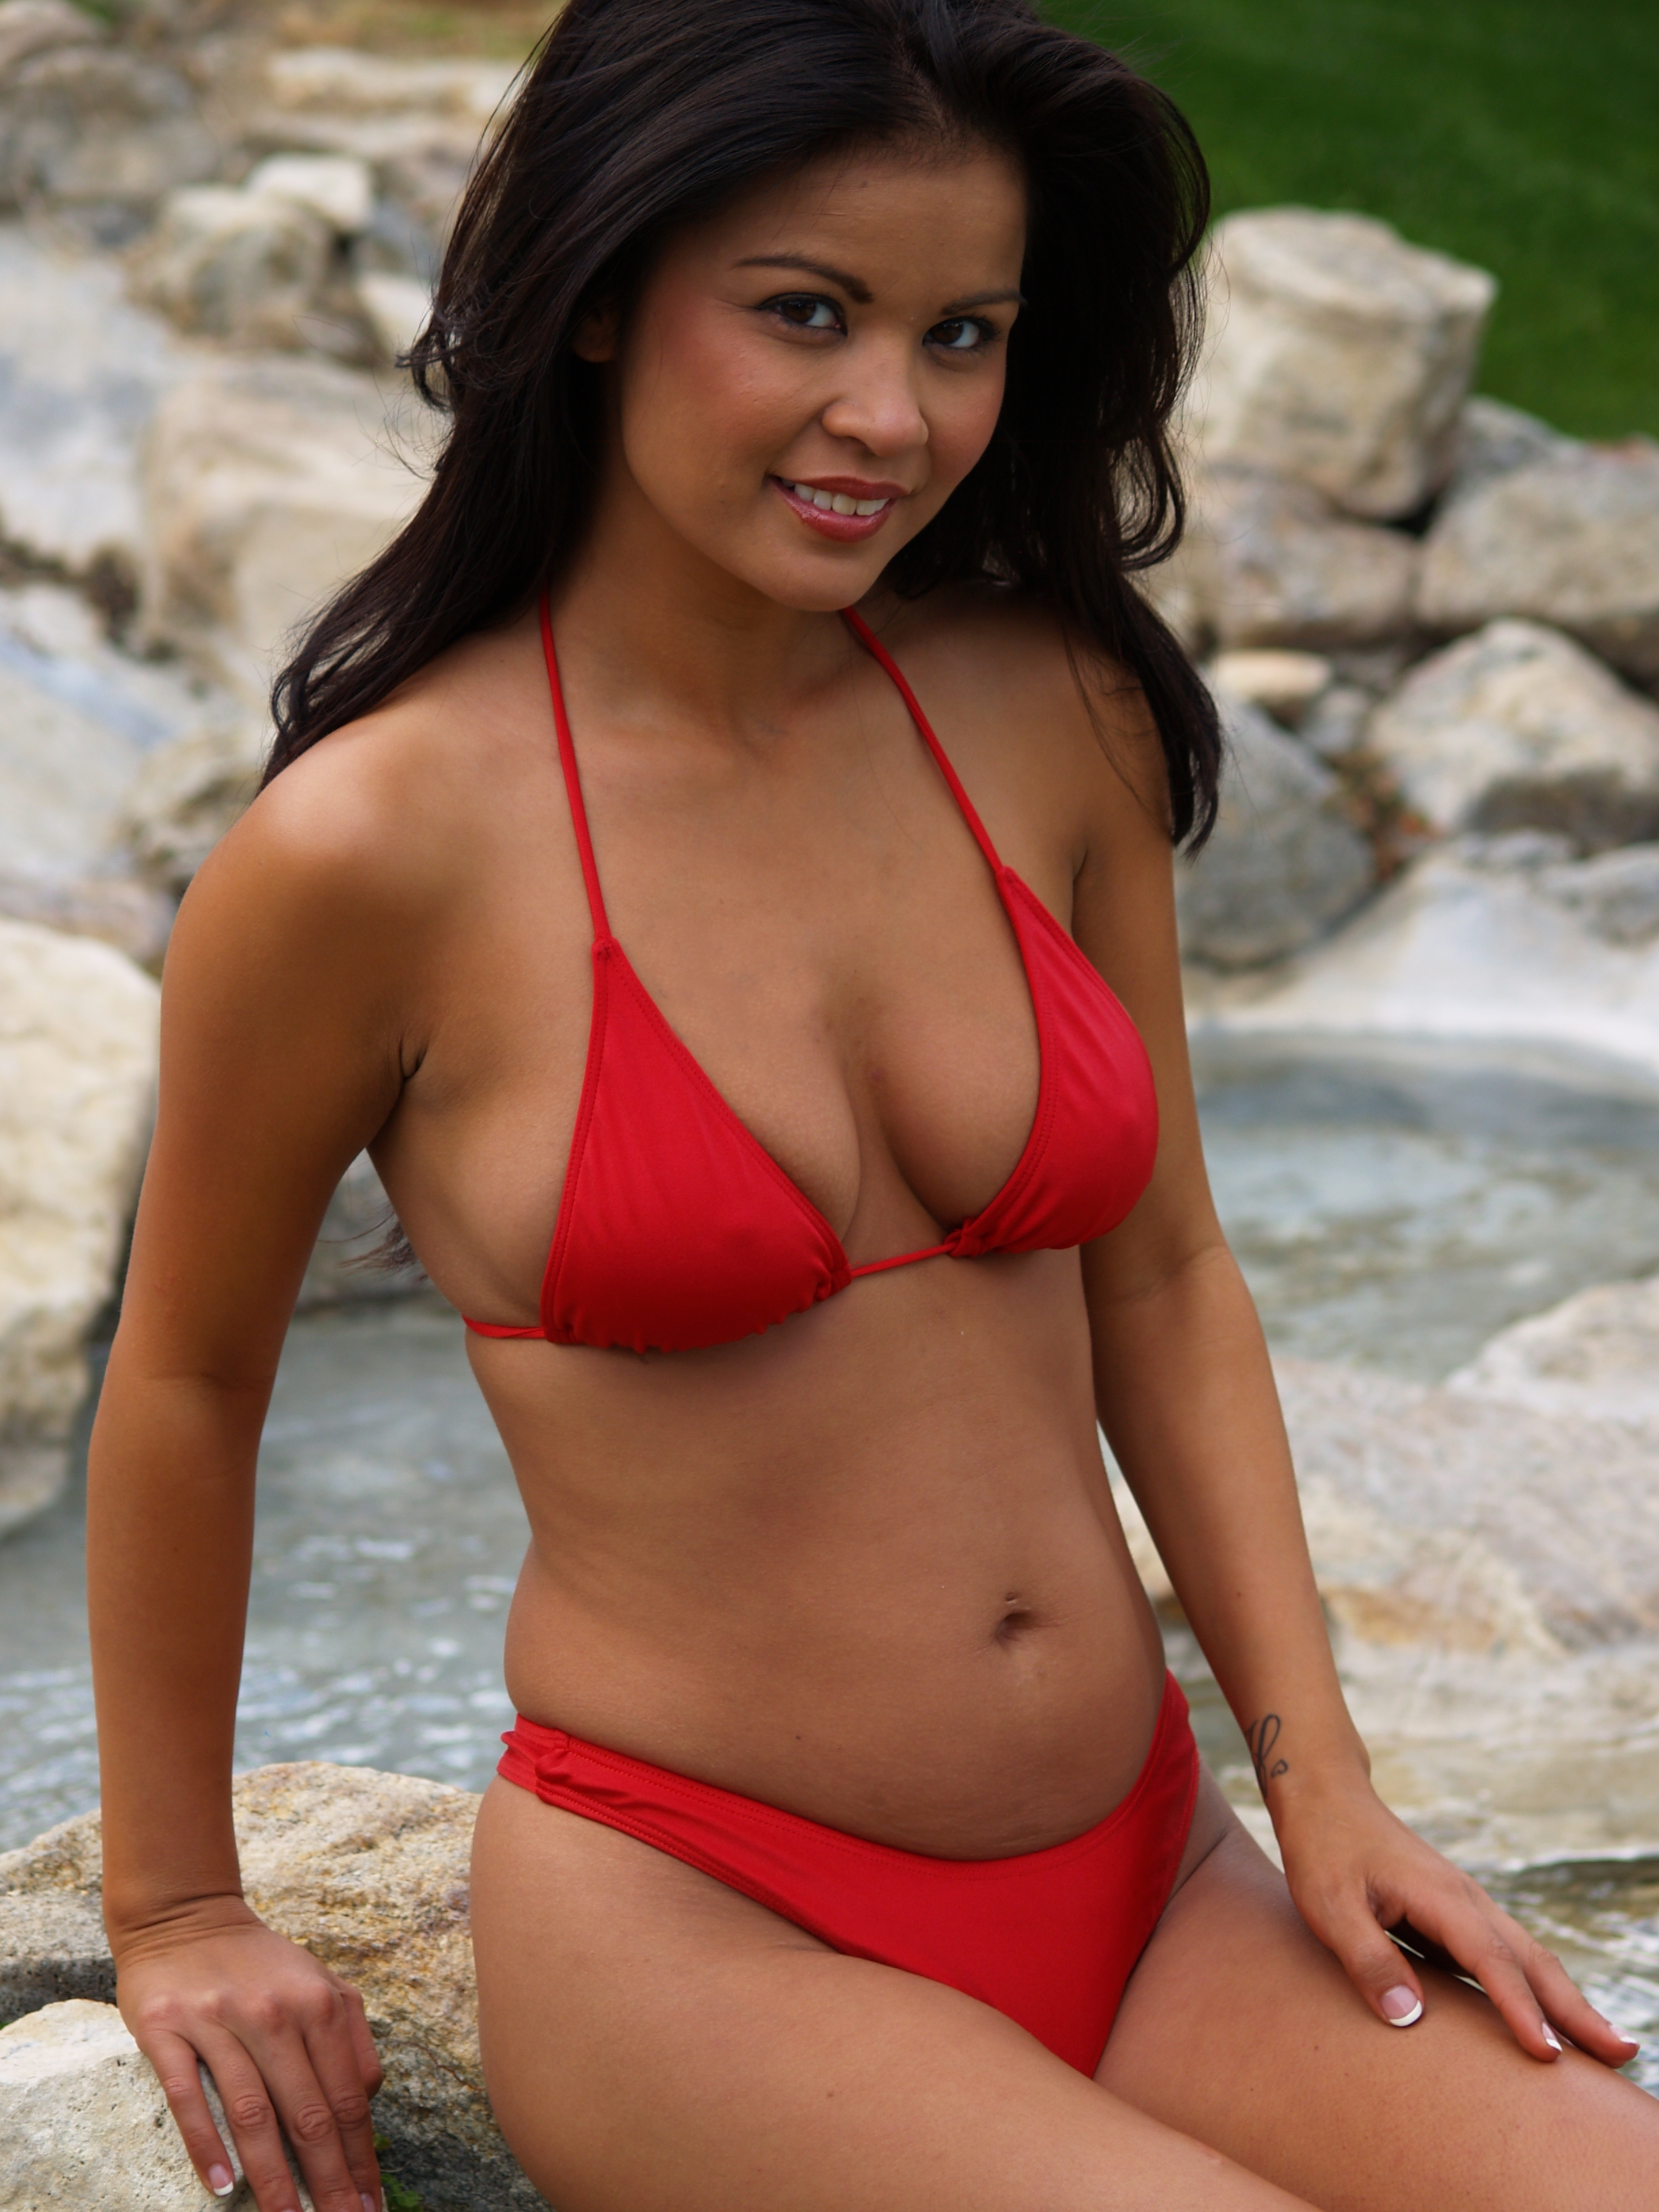 Red thong bikini swimsuit